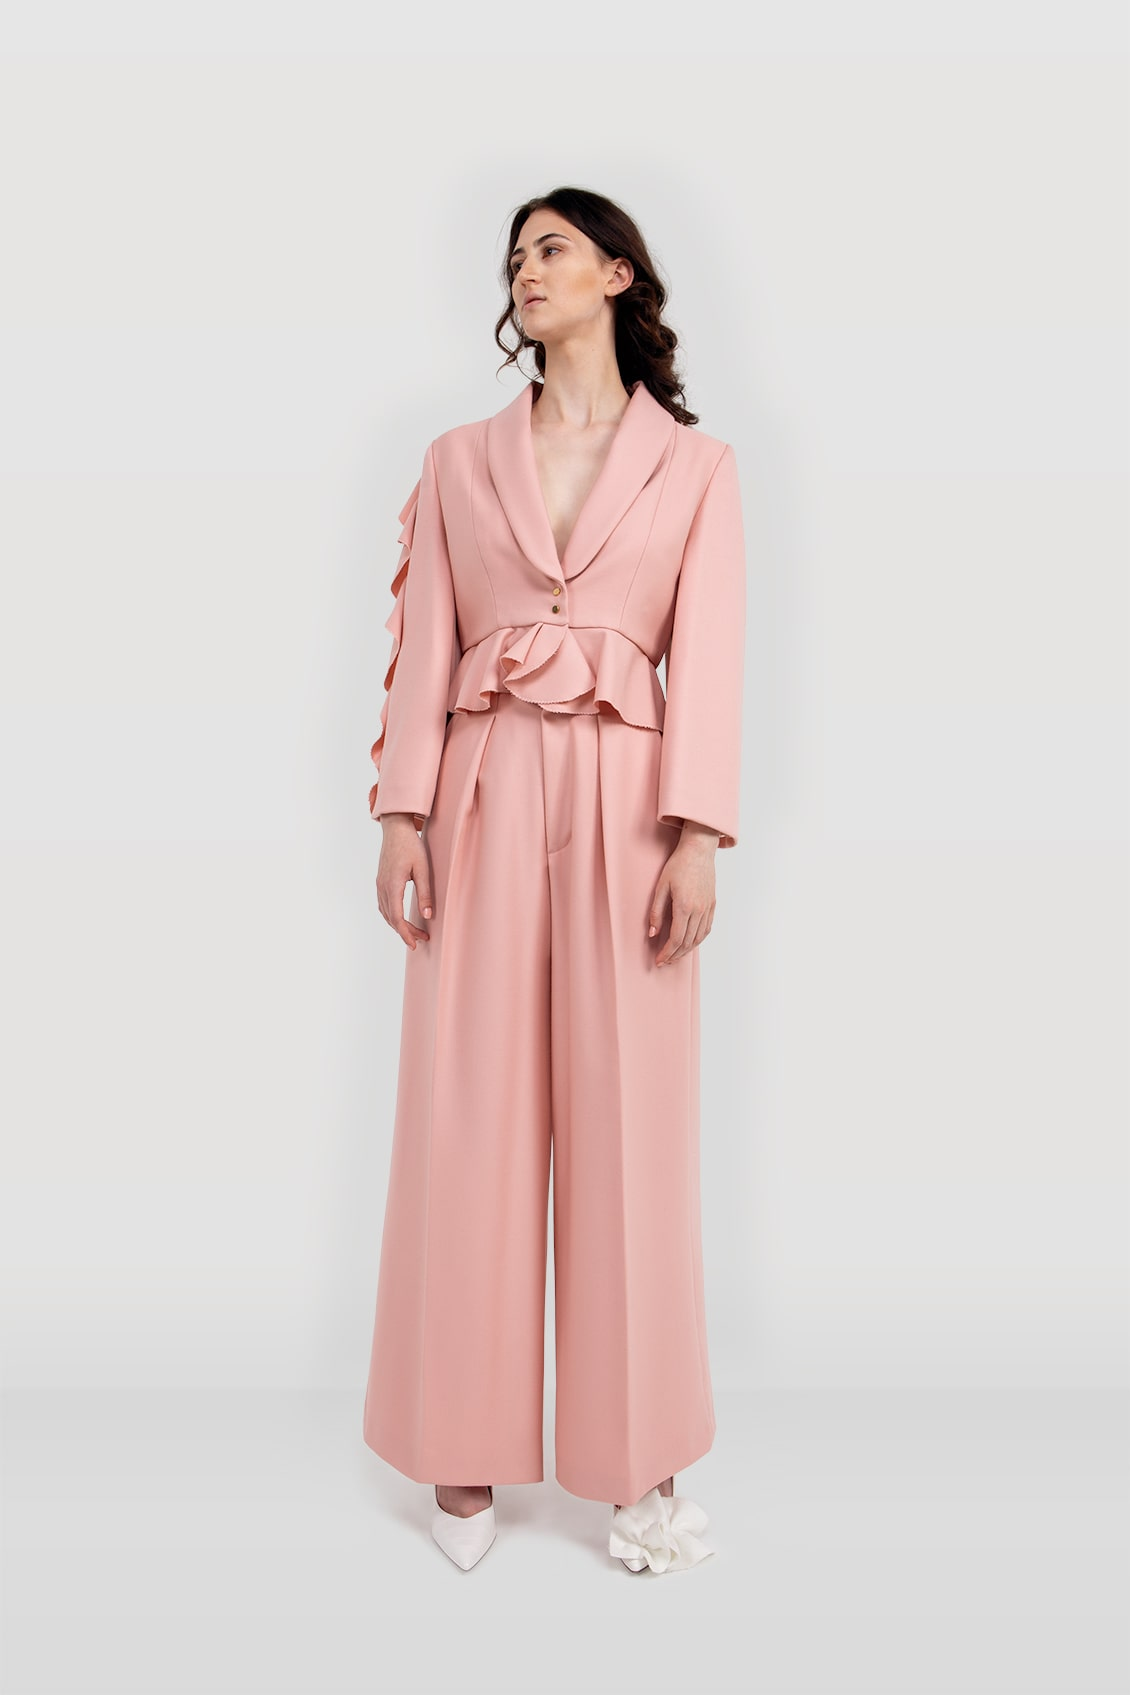 VALDONE Au - Front of the blush pink, designer suit jacket ALYSA with wide sleeves and ruffles along the right sleeve and the hem.